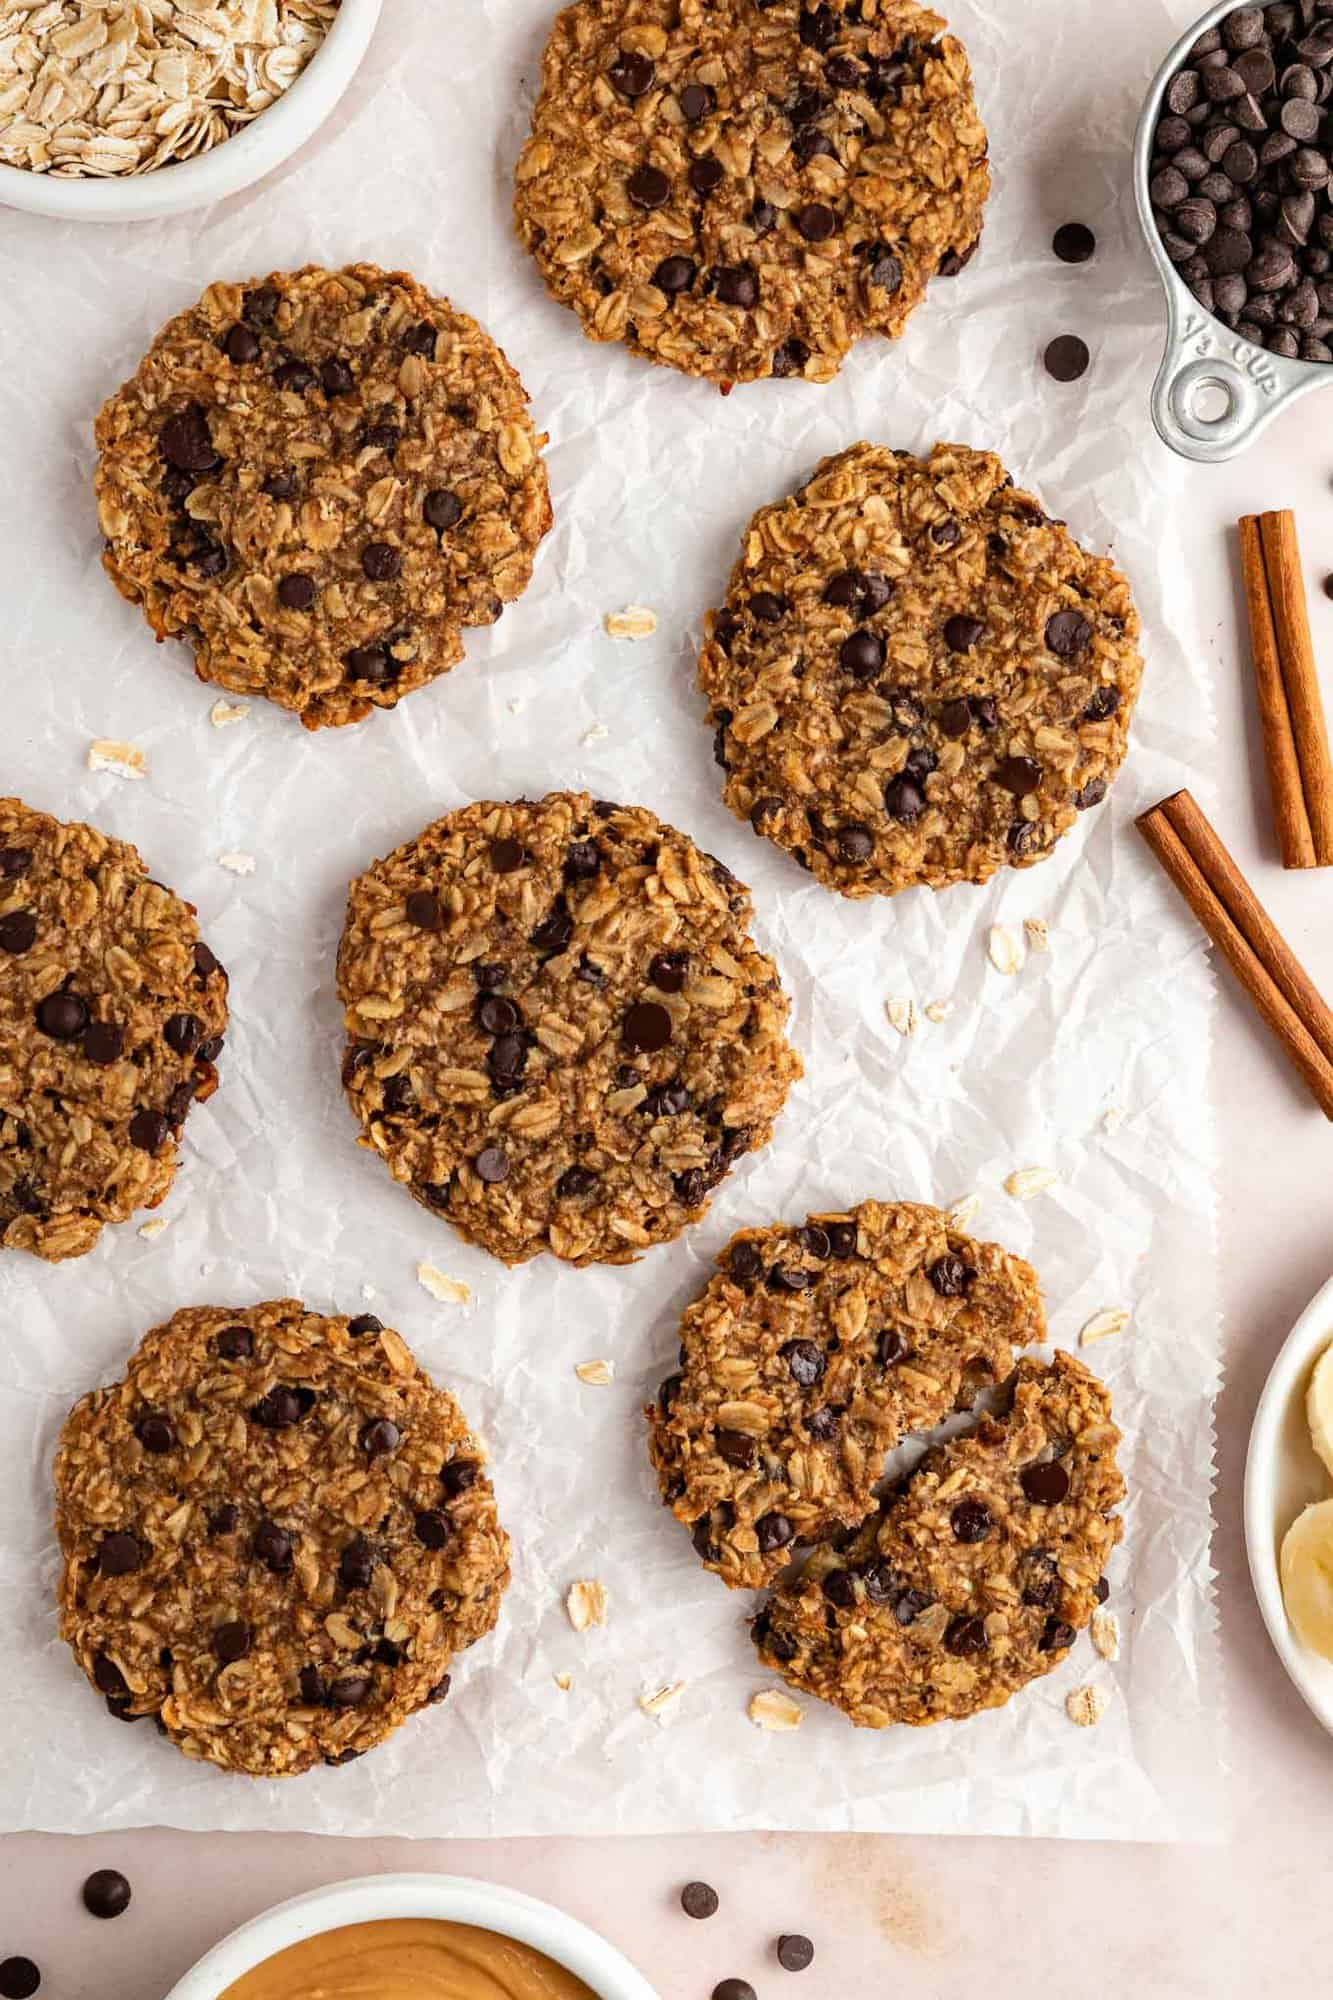 peanut butter chocolate chip banana oatmeal cookies laying on white parchment paper surrounded by ingredients in white bowls